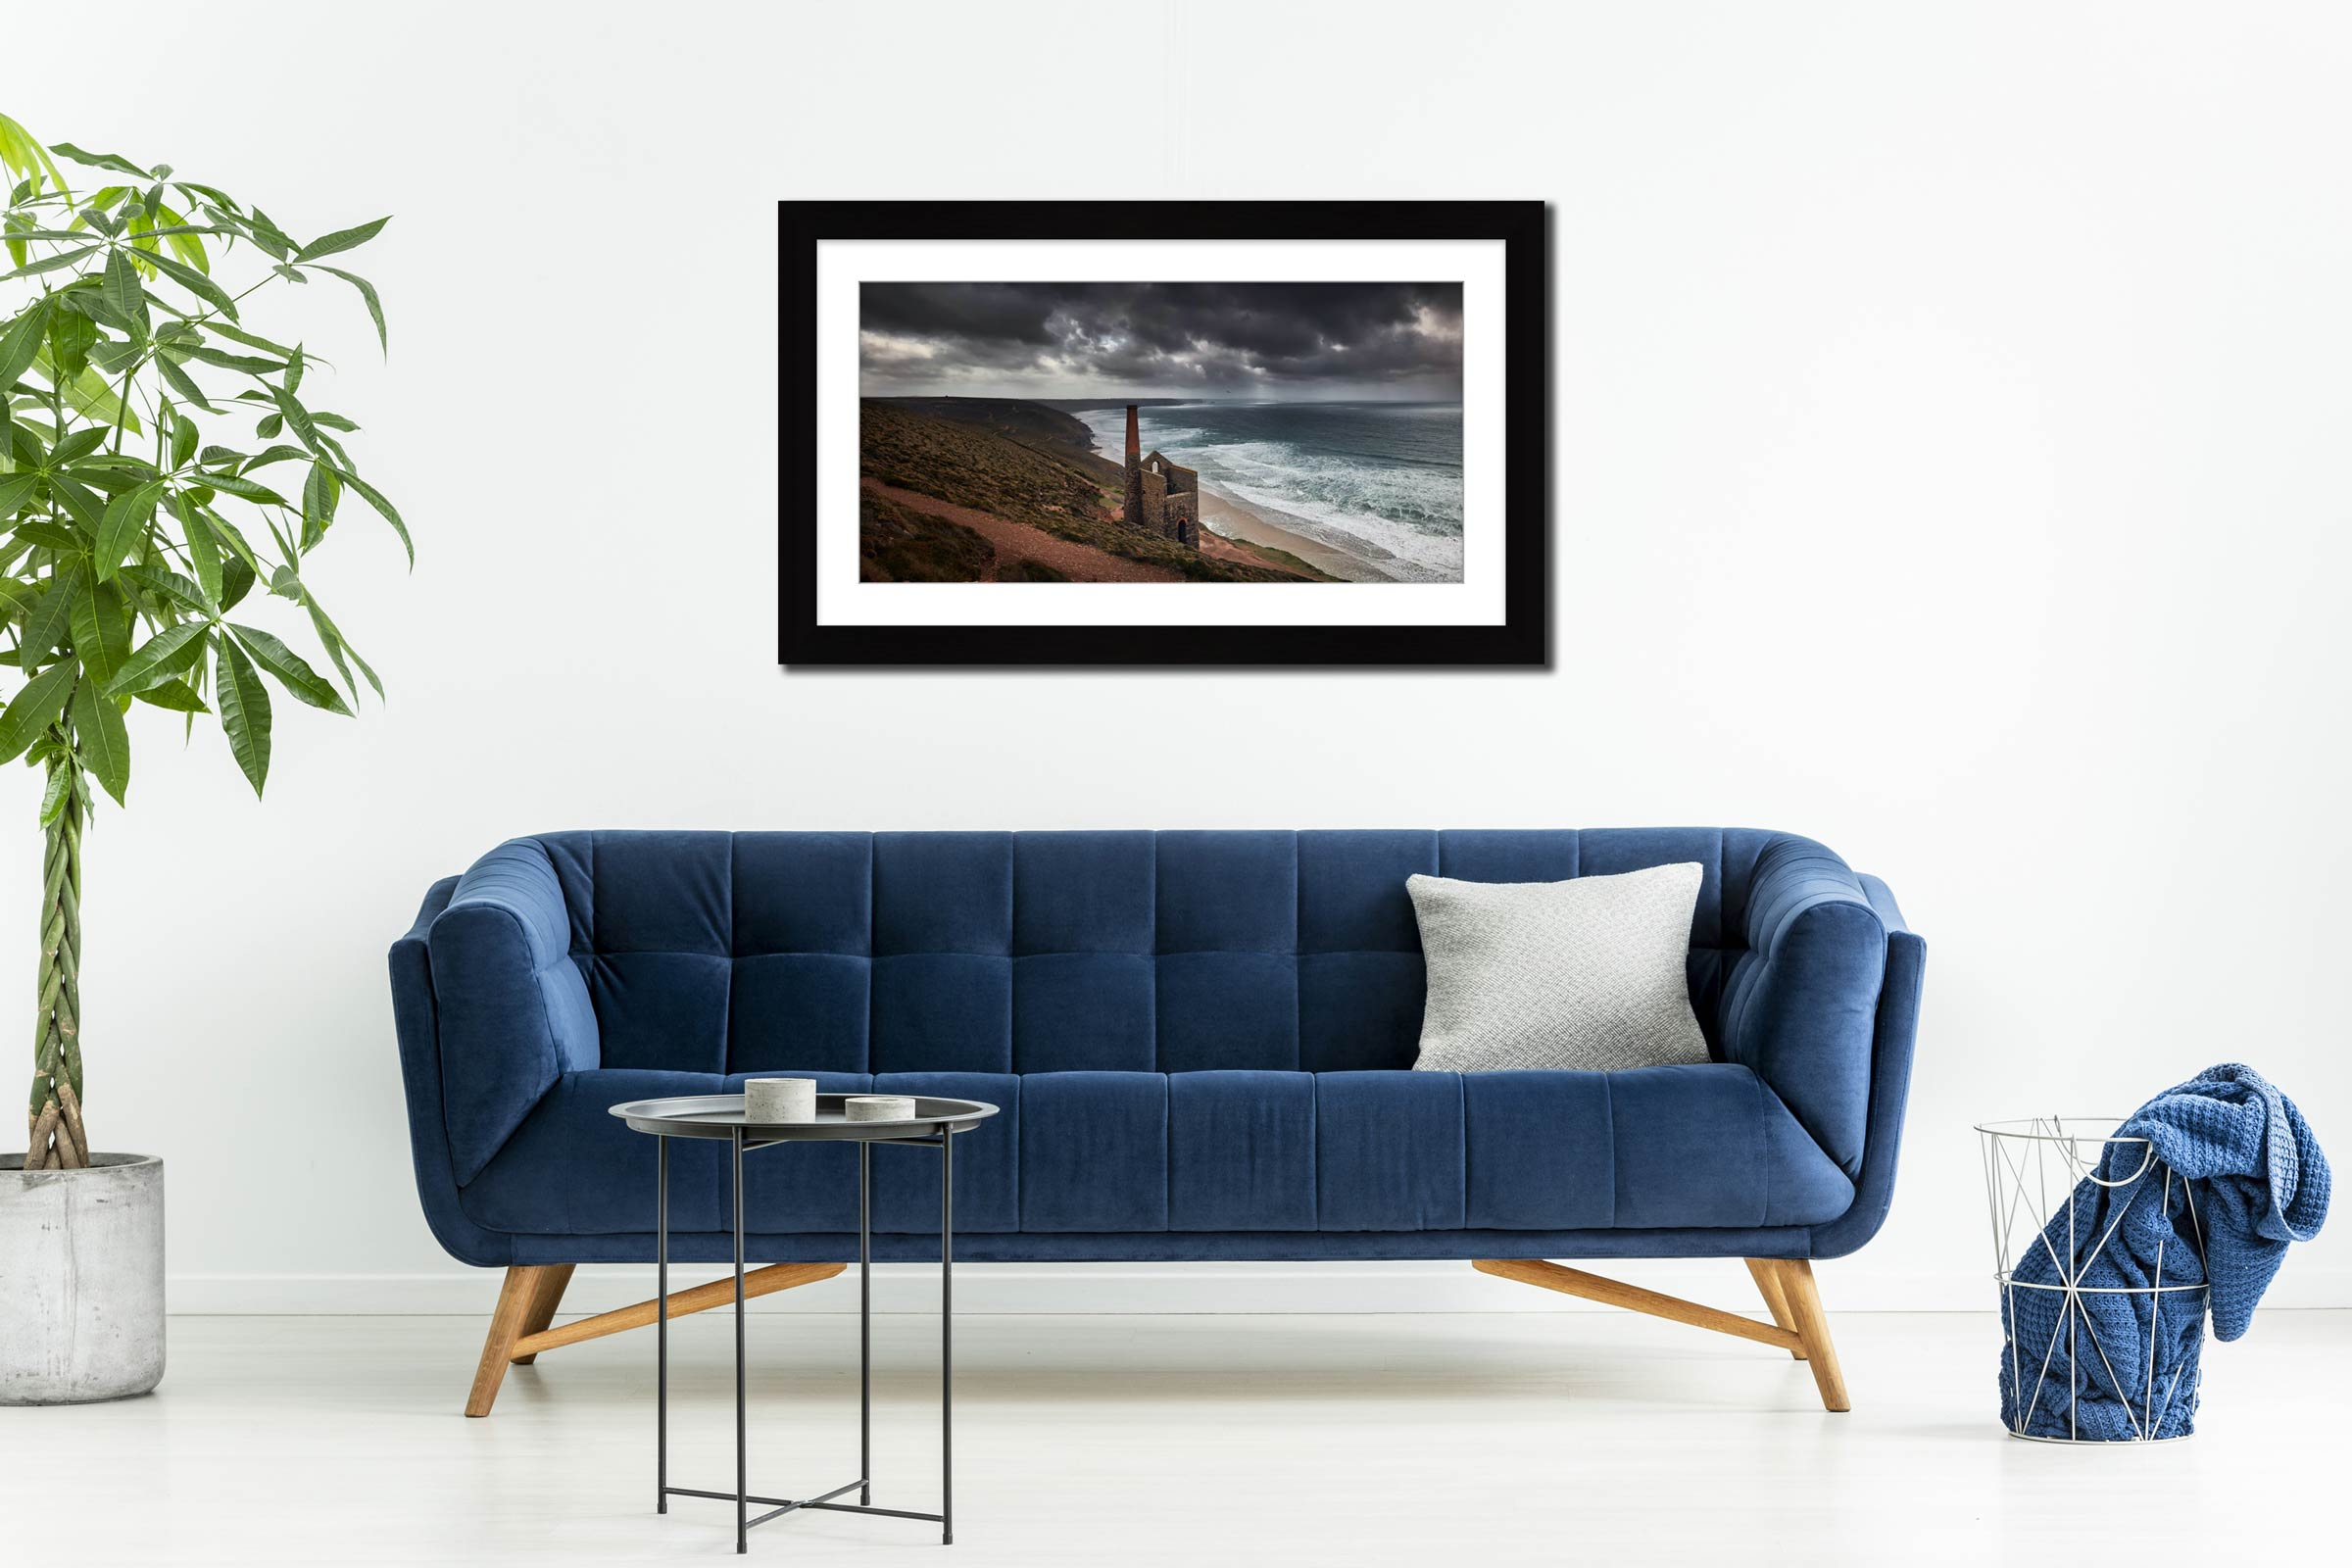 Wheal Coates Mine Ruin - Framed Print with Mount on Wall